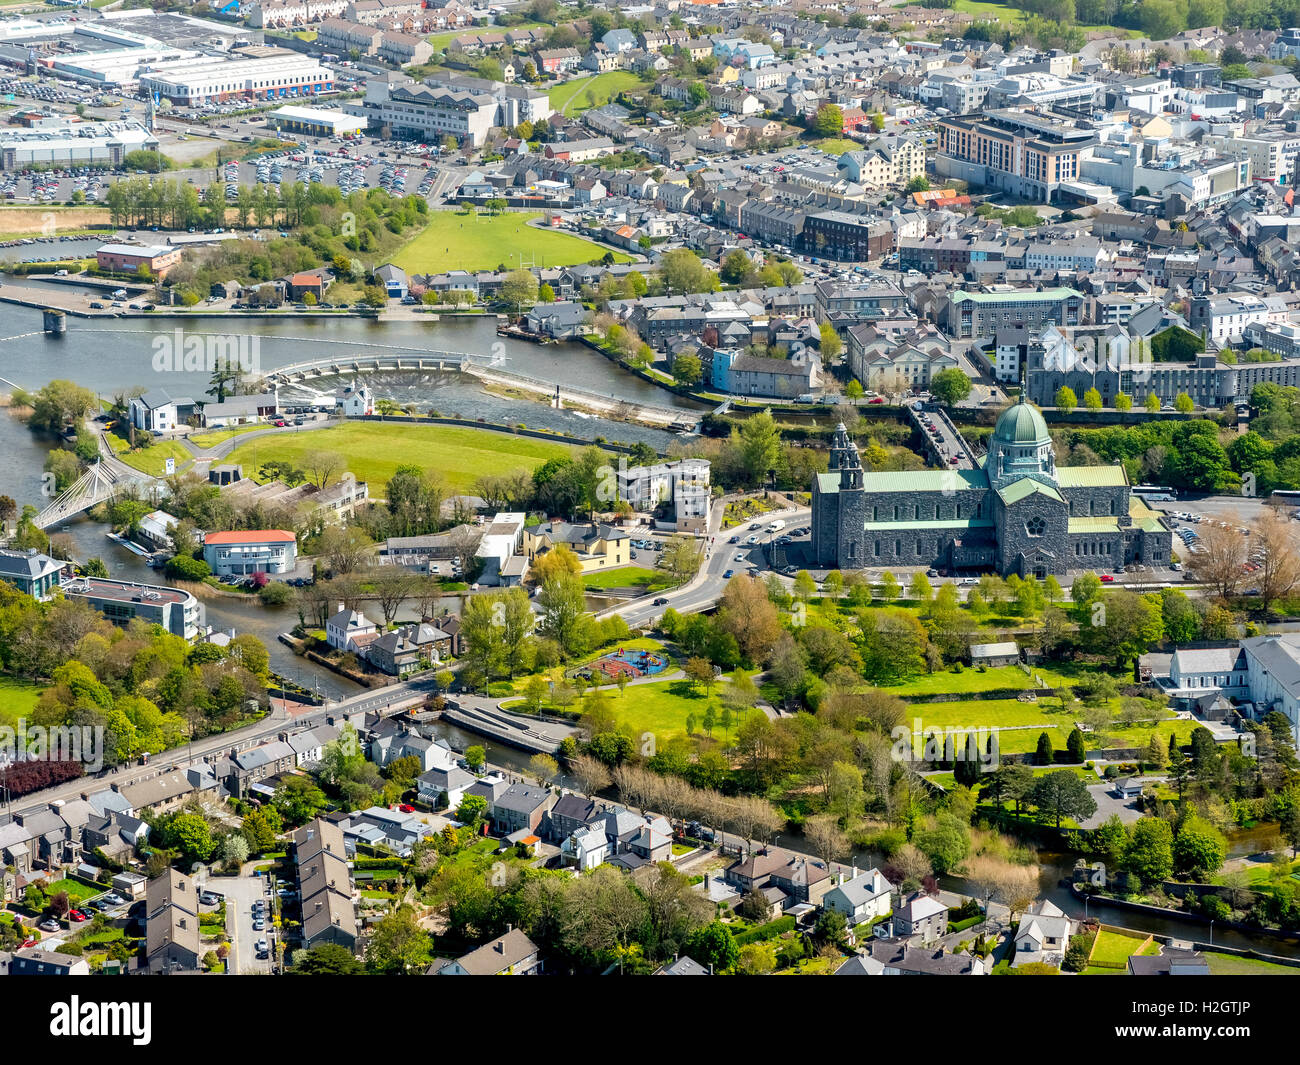 Aerial view, Galway, city and cathedral, County Clare, Ireland - Stock Image